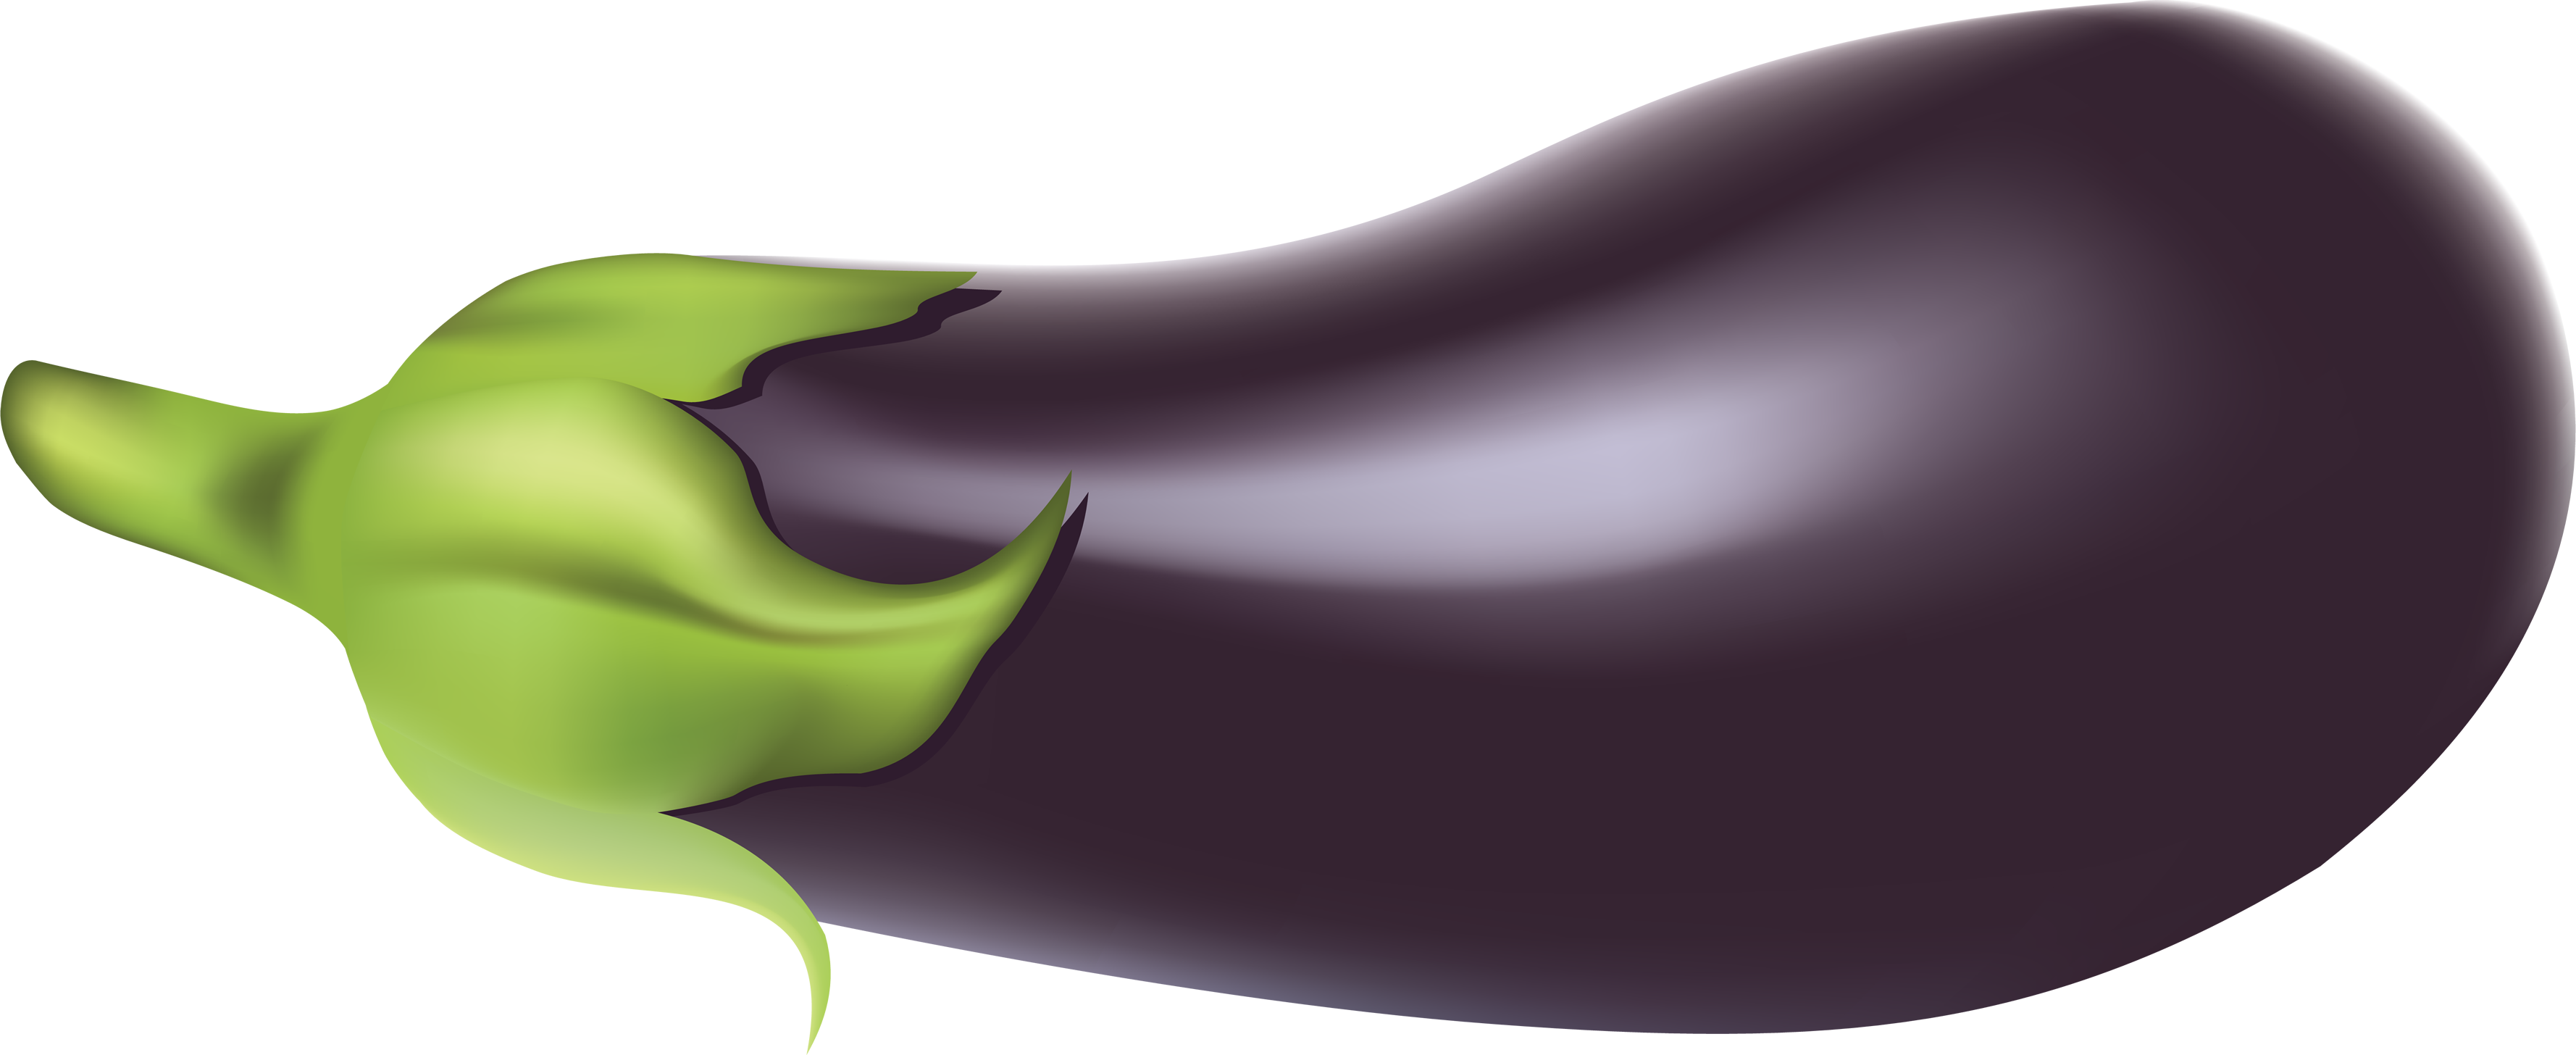 Eggplant PNG Clipart image #46683